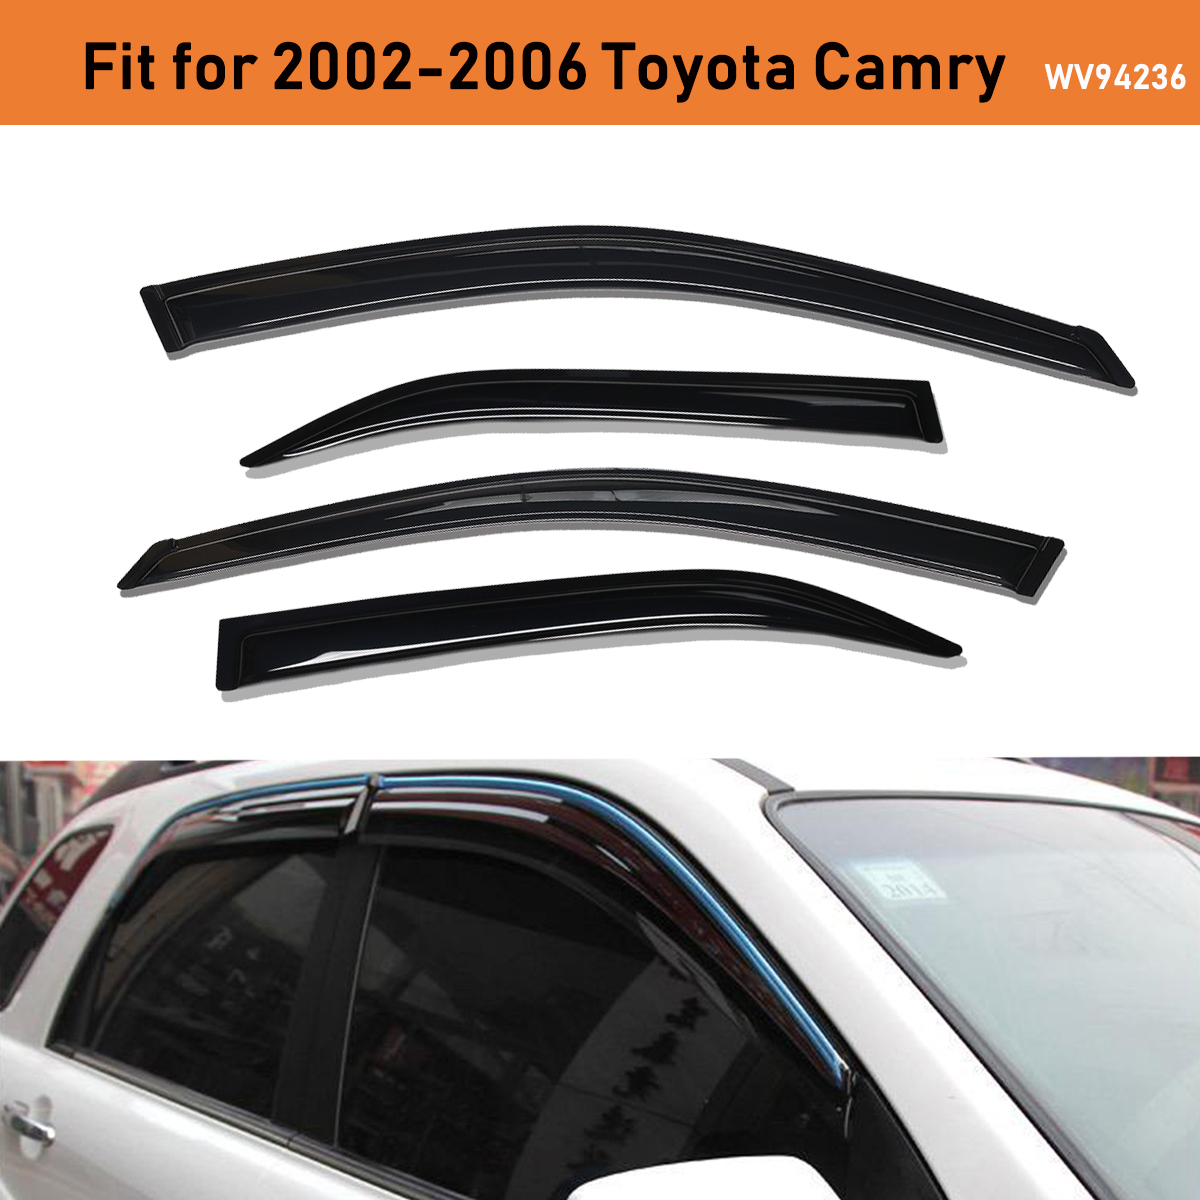 For Toyota 2002-2006 Camry SIDE WINDOW VISOR SHADE WIND RAIN GUARD DEFLECTOR SET